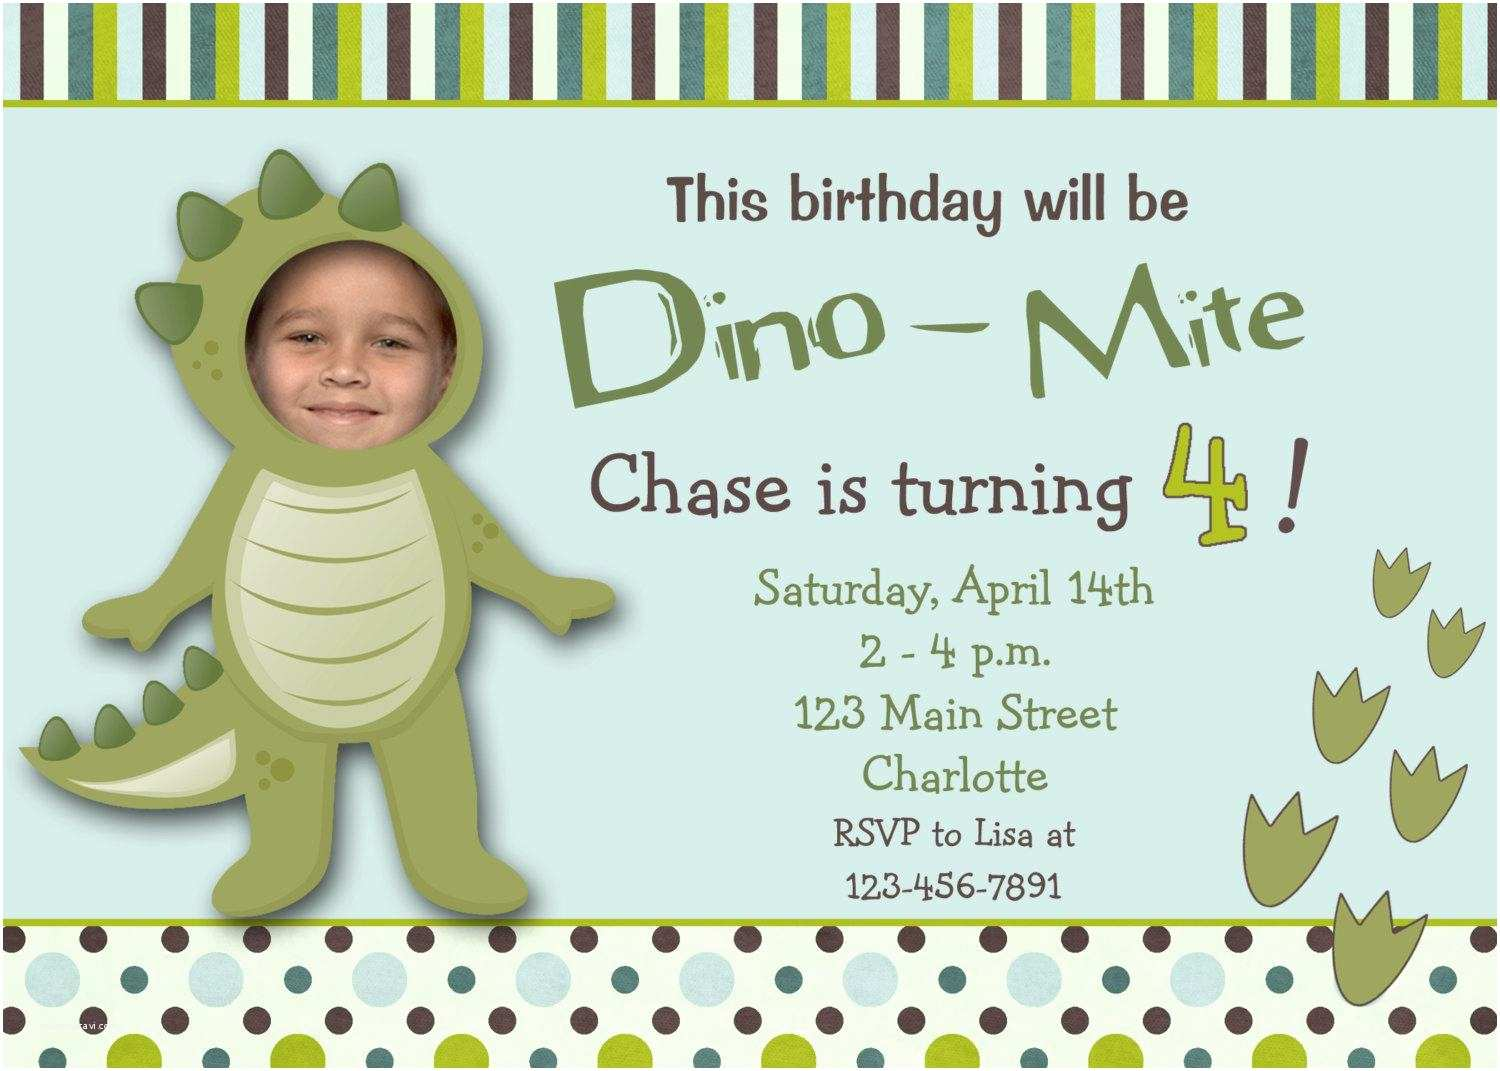 Birthday Party Invitations 17 Dinosaur Birthday Invitations How to Sample Templates